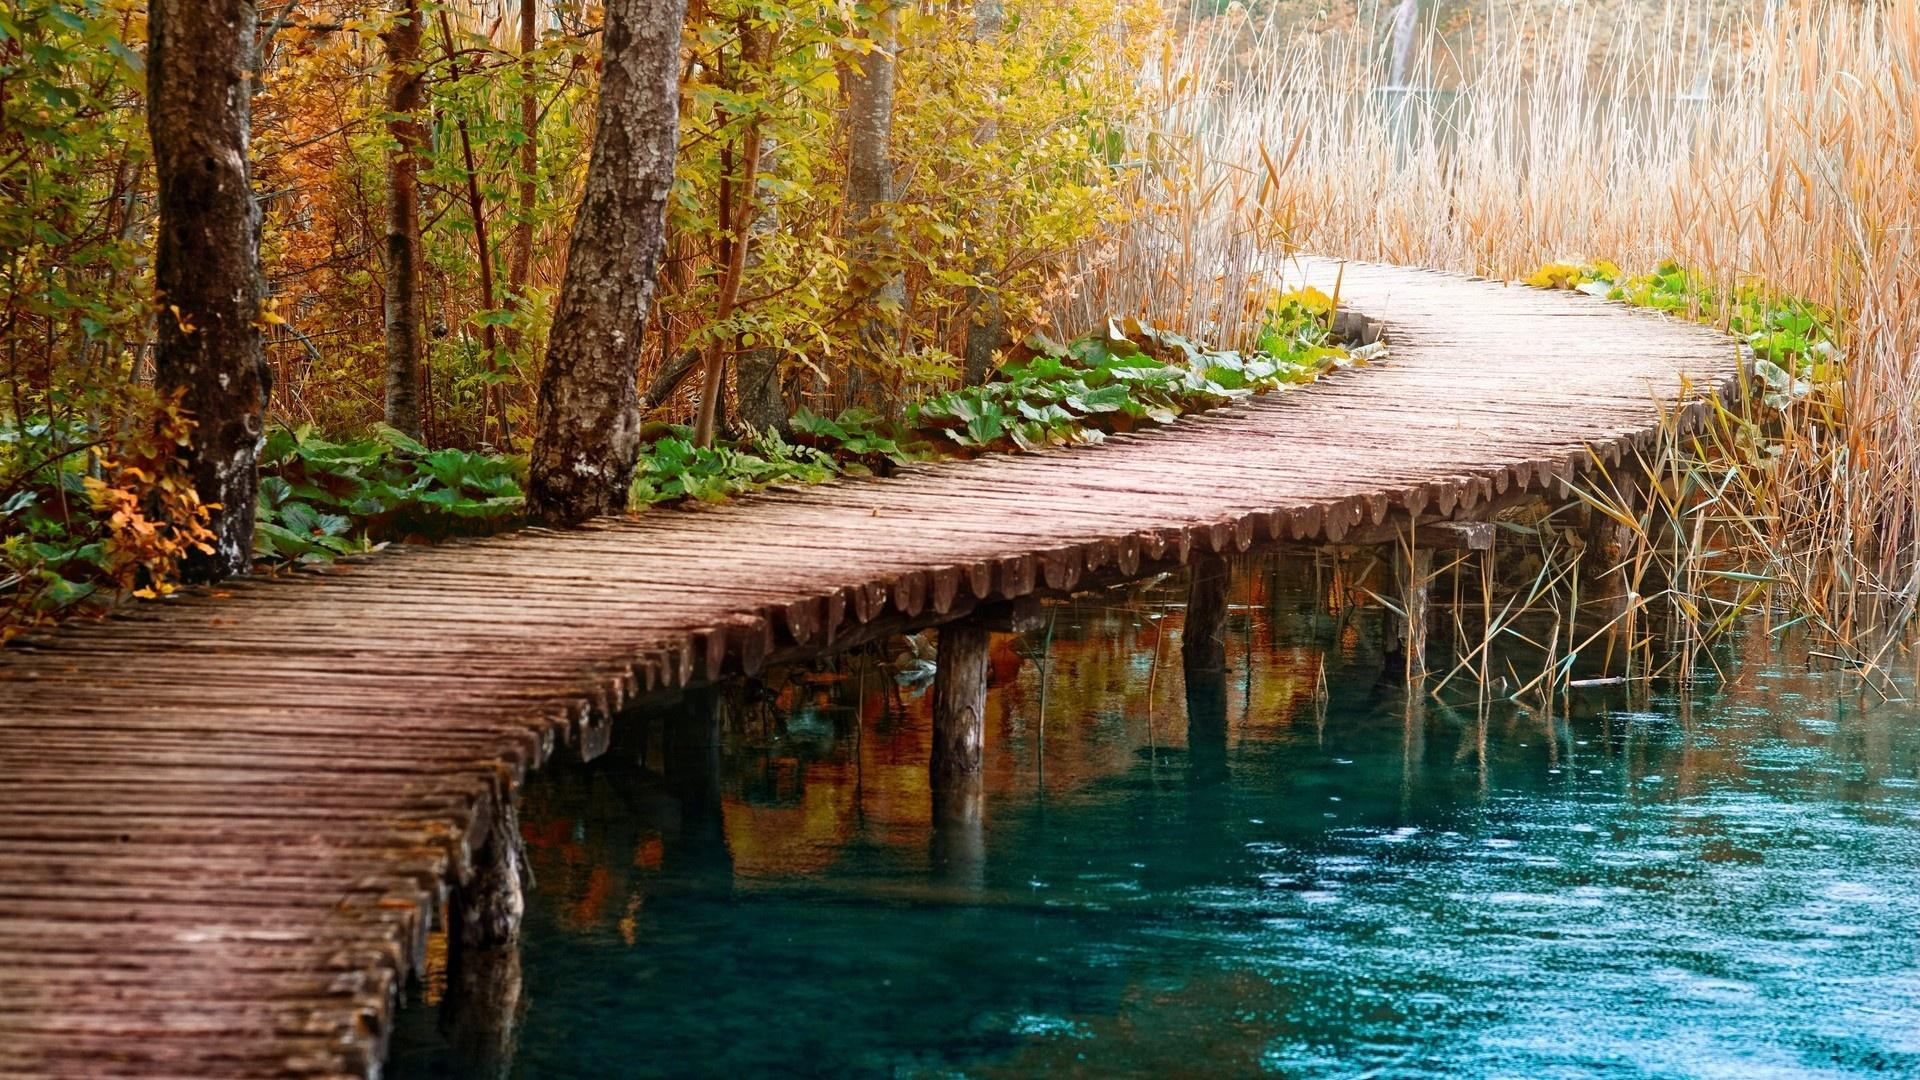 wooden path in forest hd wallpaper the truth of life